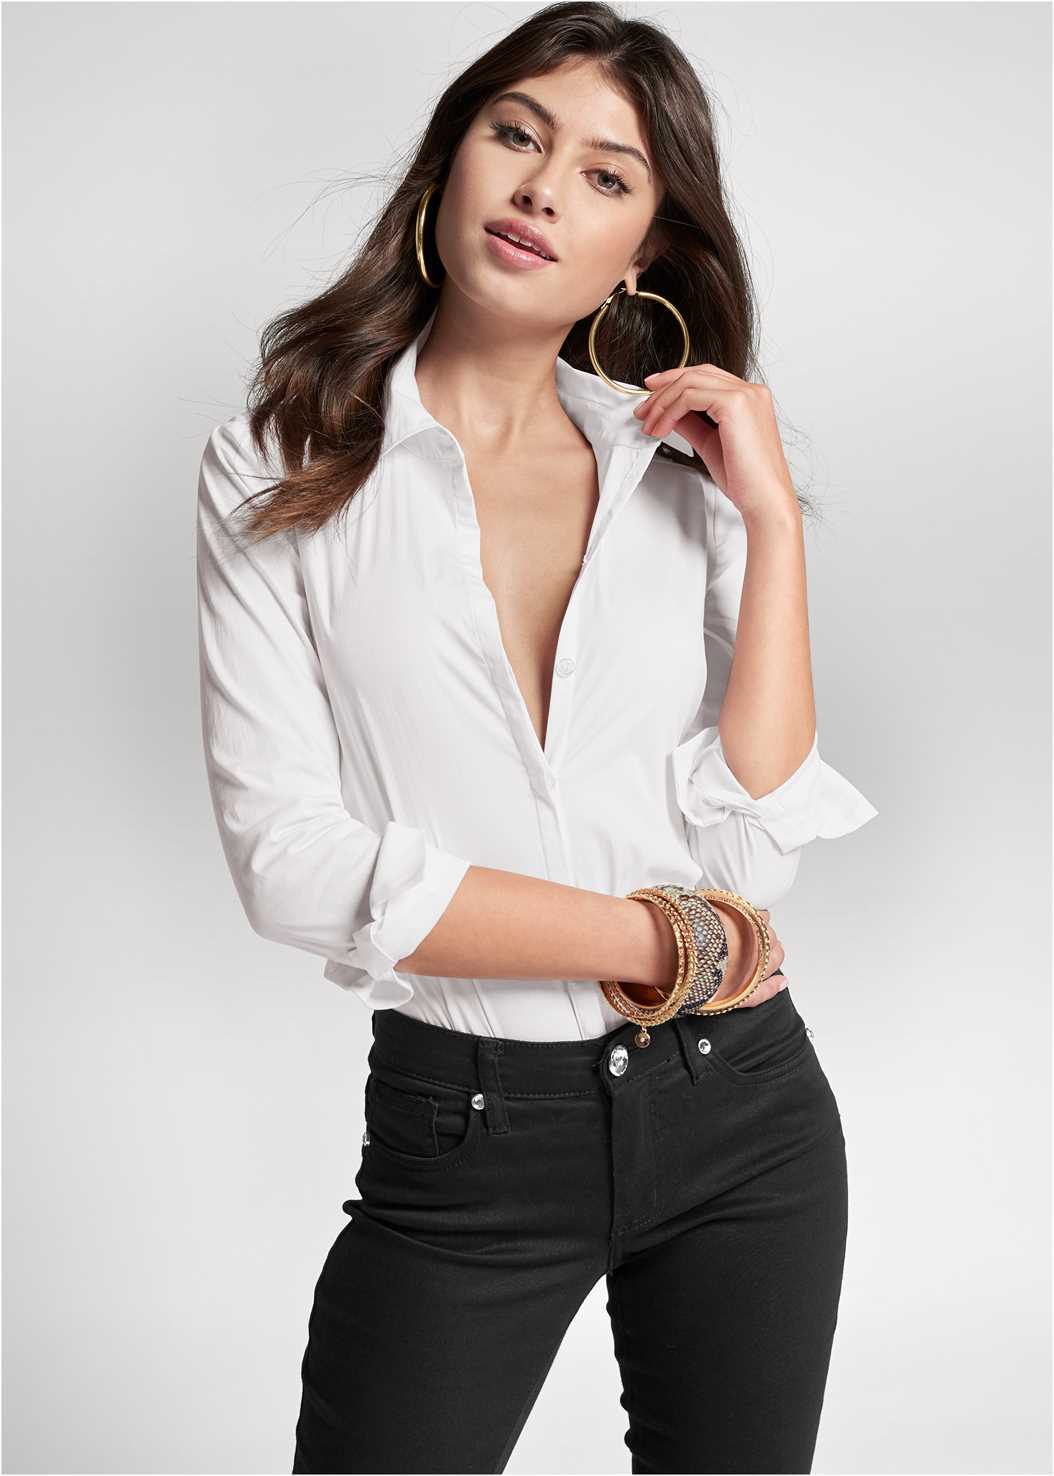 Button Up Bodysuit,Mid Rise Color Skinny Jeans,Bum Lifter Jeans,High Heel Strappy Sandals,Animal Print Bangle Set